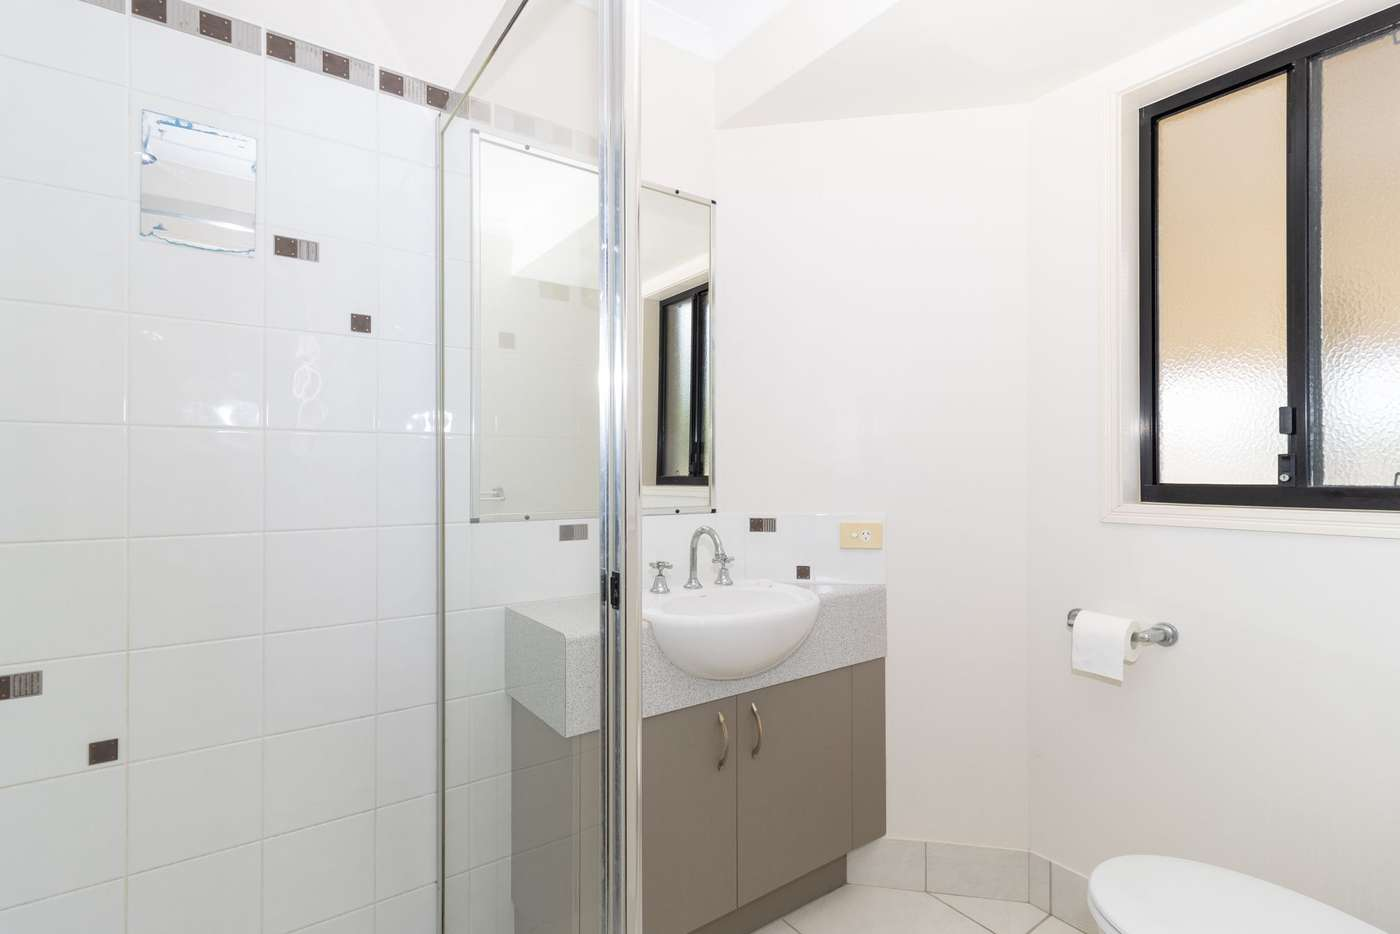 Sixth view of Homely house listing, 1 Northwest Bay Court, Wondunna QLD 4655